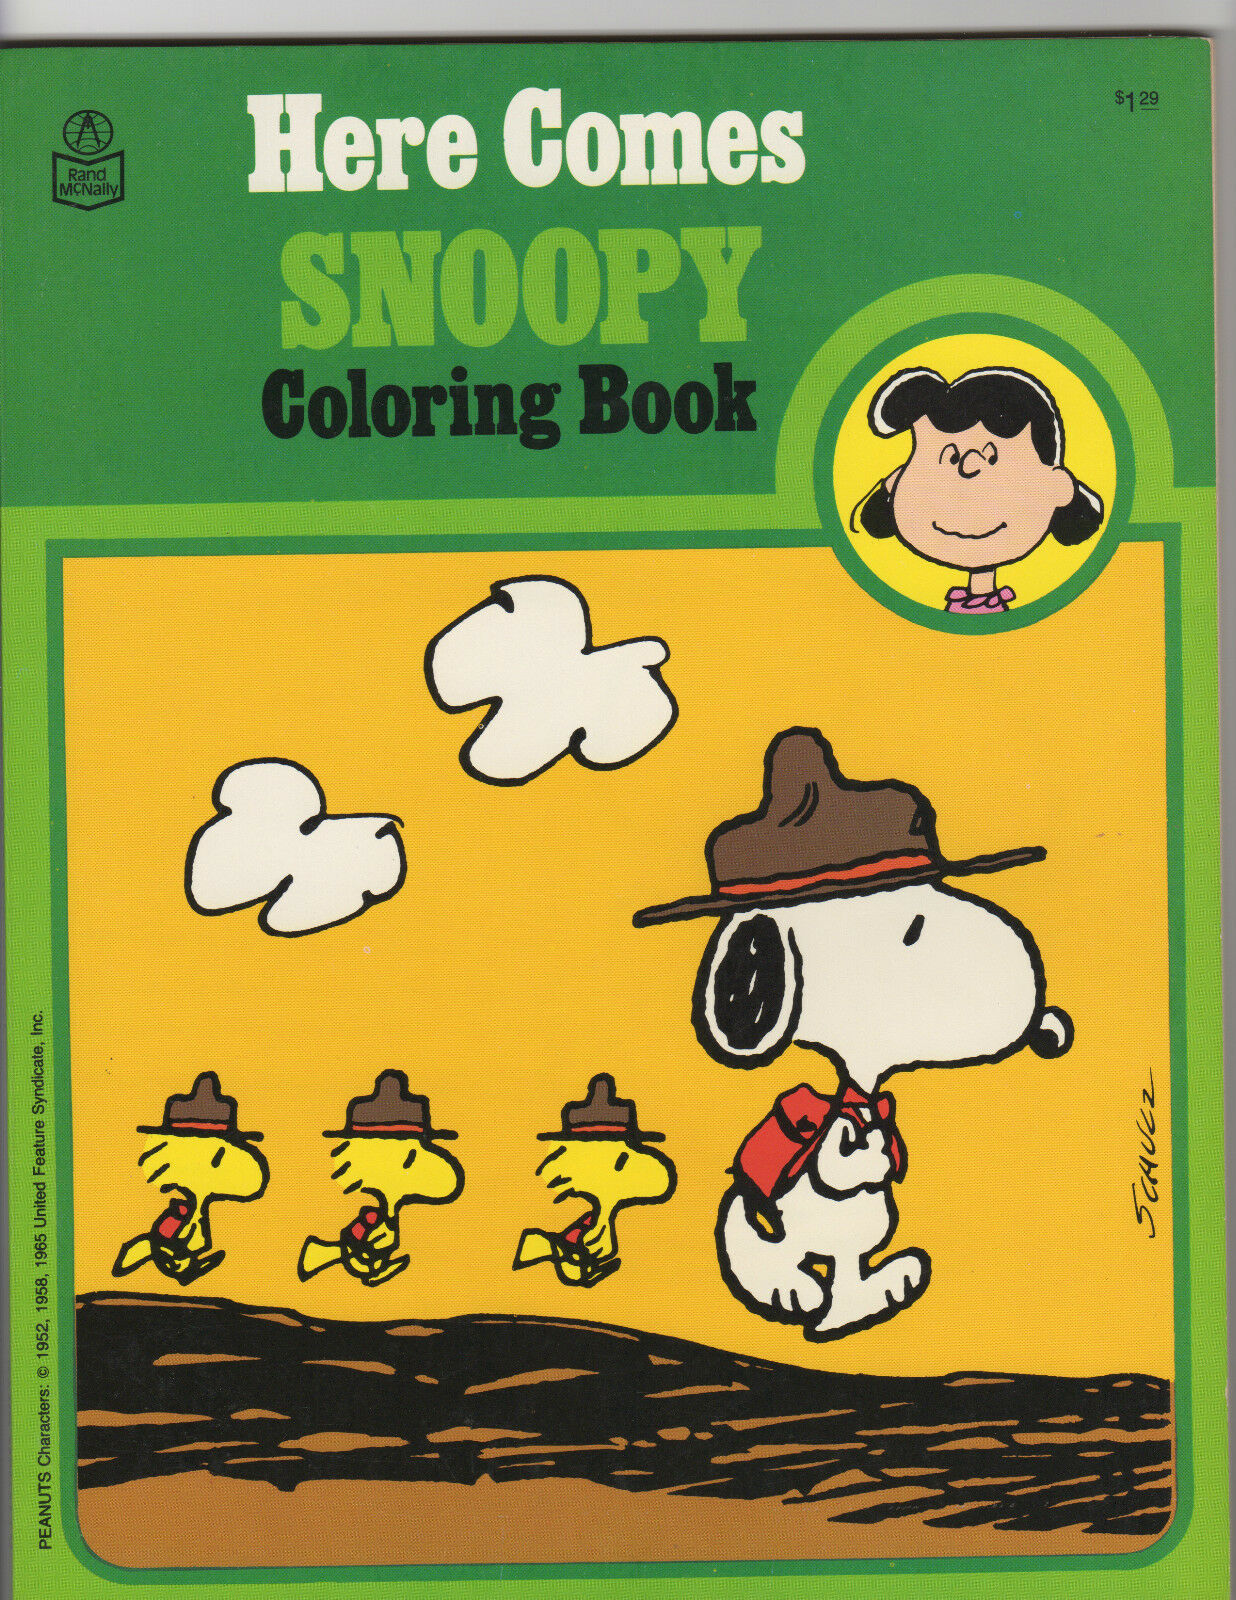 HERE COMES SNOOPY  COLORING BOOK BOOK BOOK  1980 UNUSED  PEANUTS GANG  RAND MCNALLY 08dab5